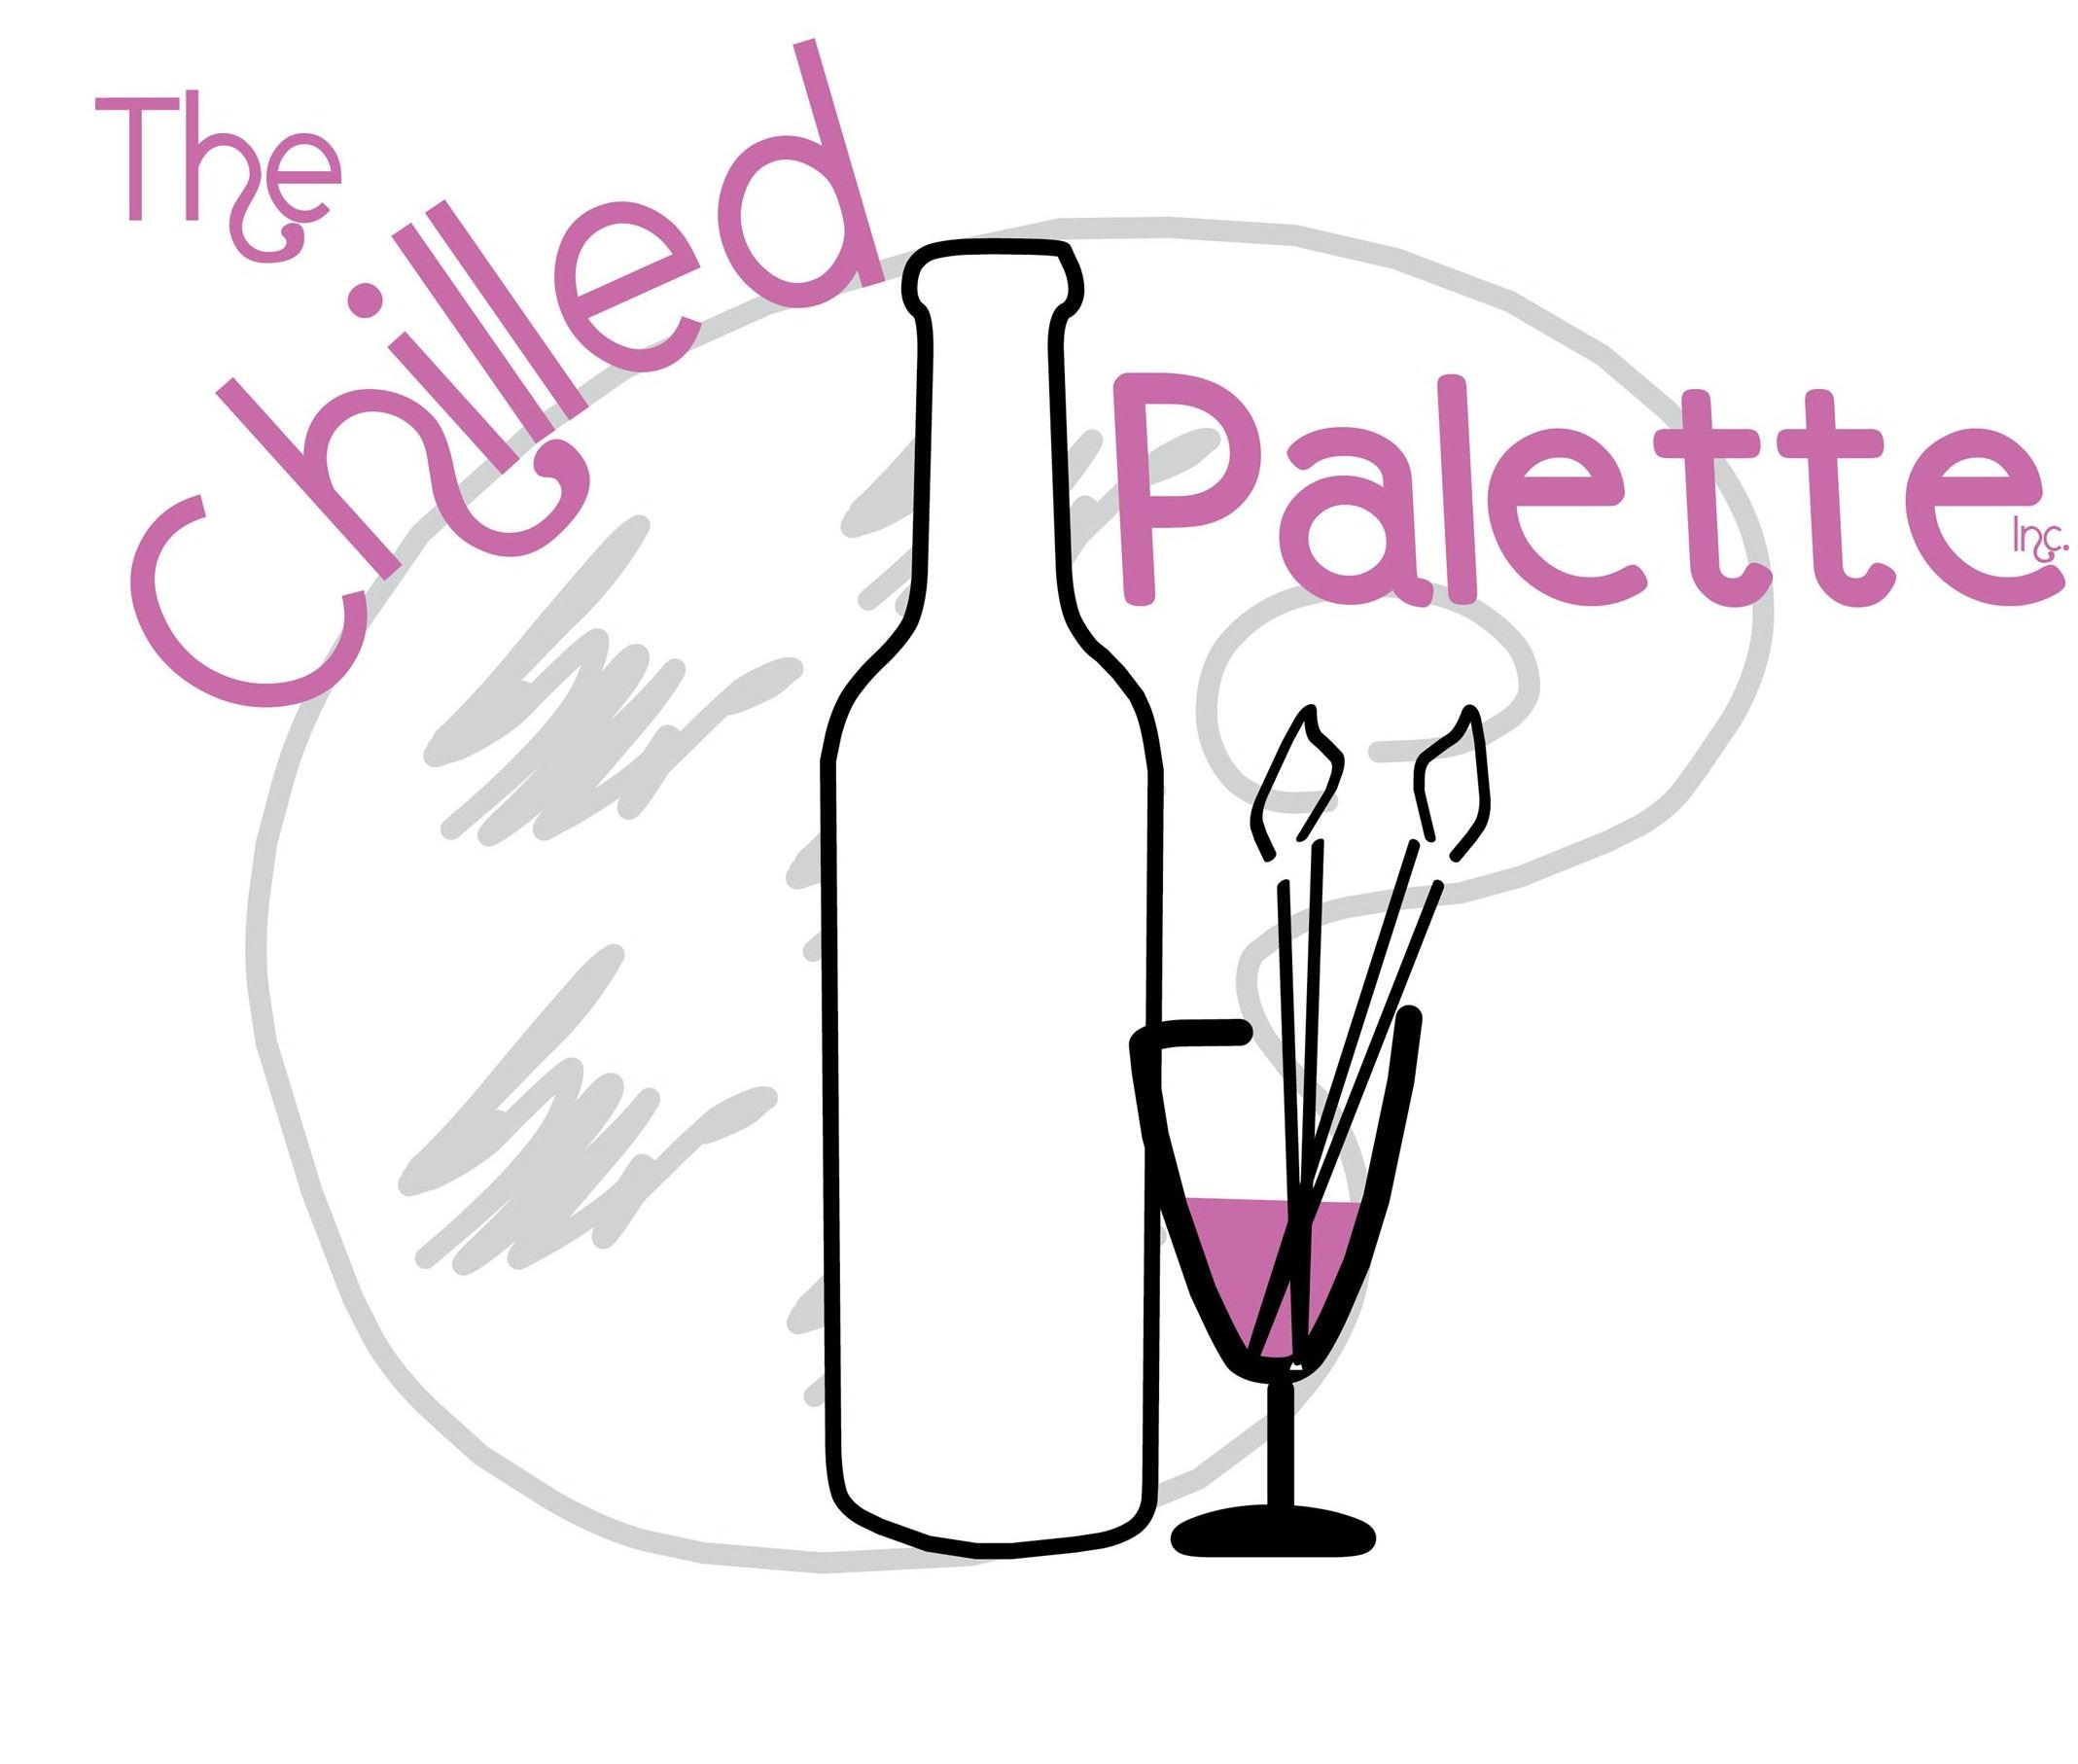 Chilled Palette logo